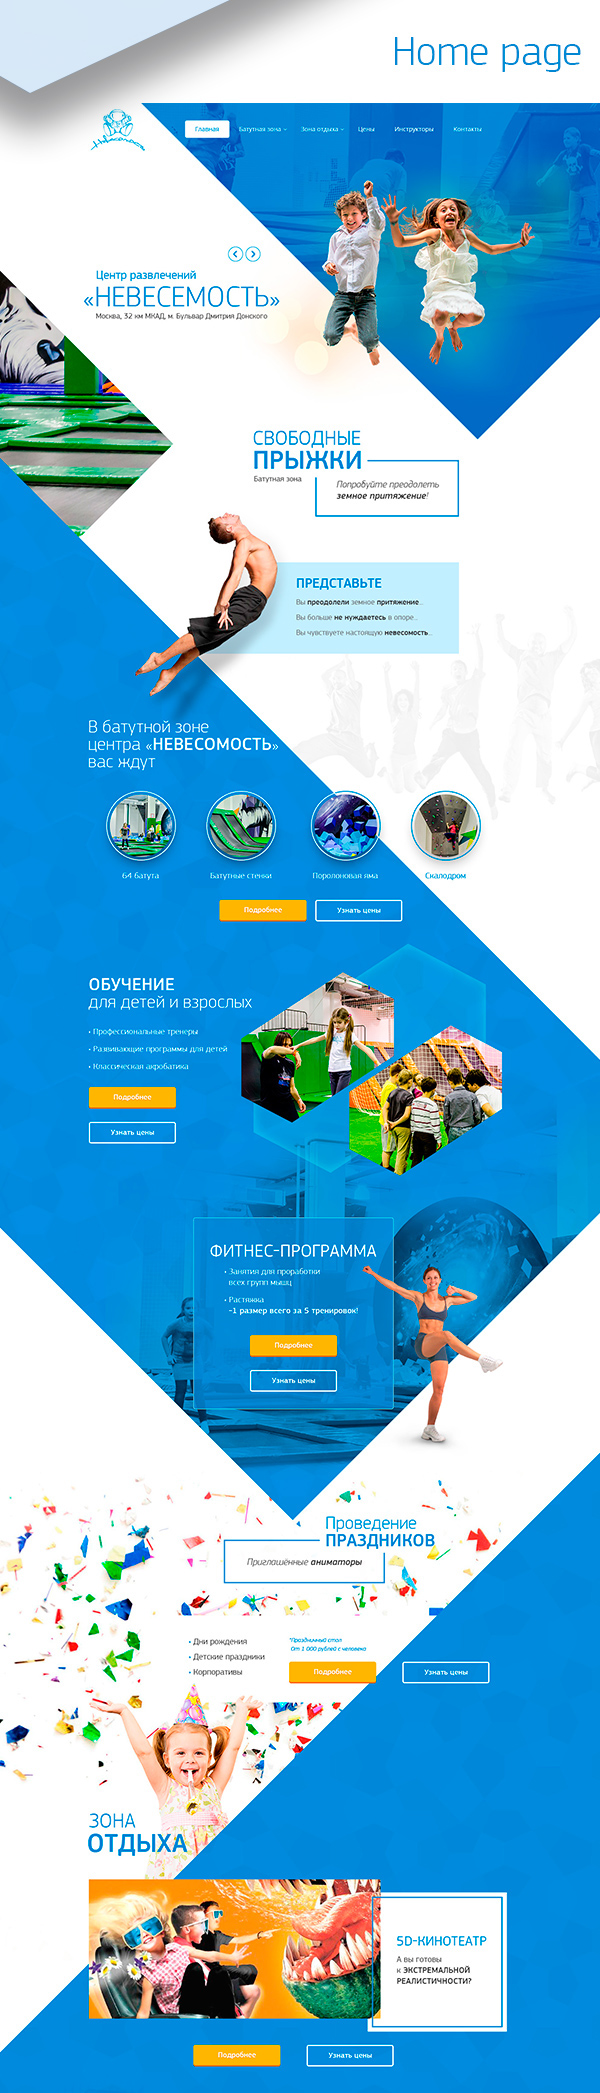 Web site for entertainment center. Jumping on the trampoline, acrobatics, and a lot of fun and positive )))